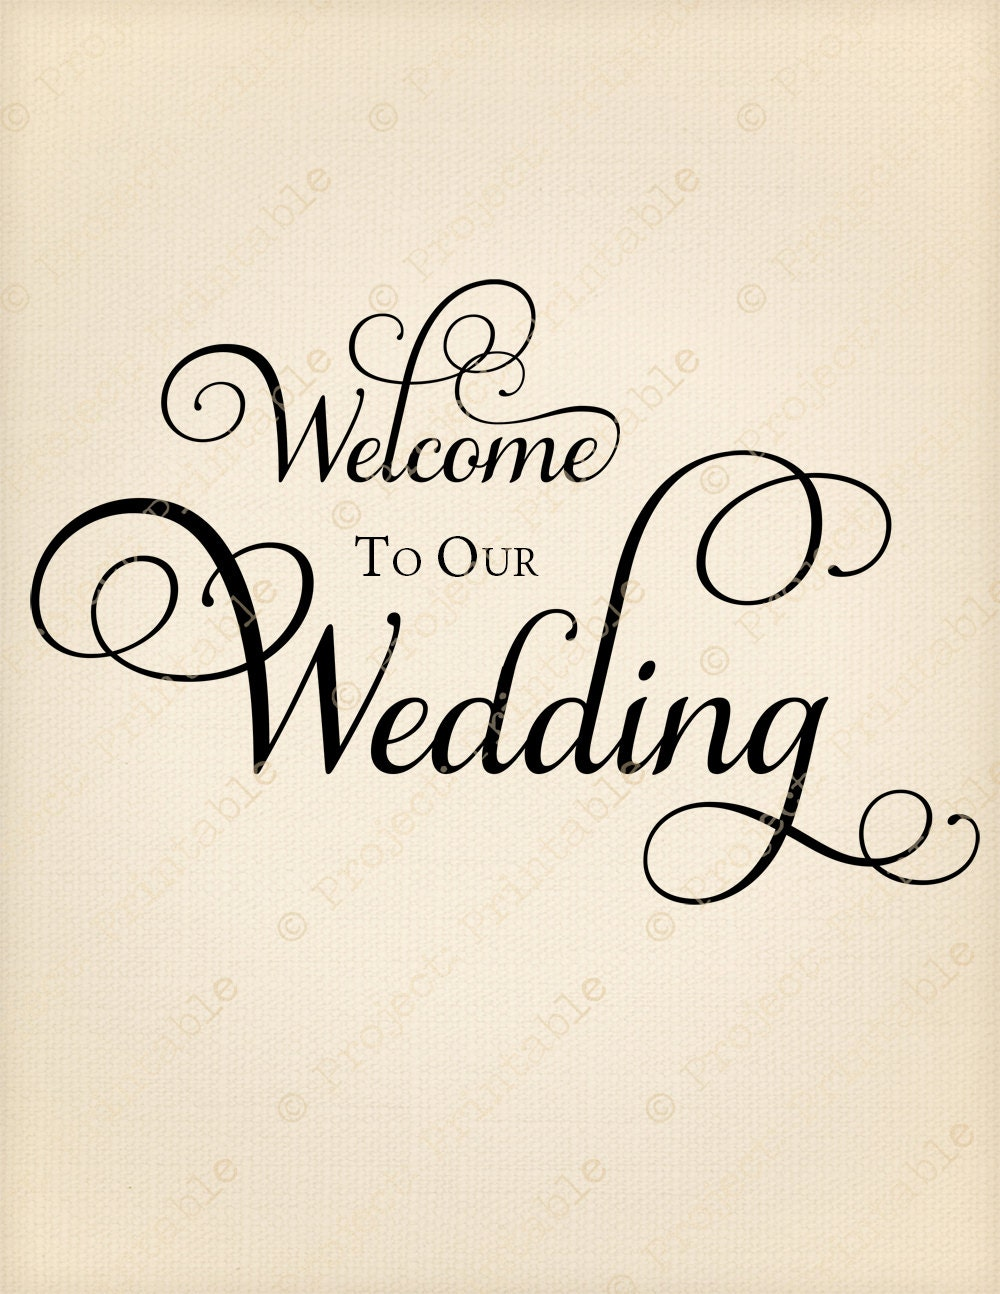 WELCOME to our WEDDING Instant Digital Download Fabric